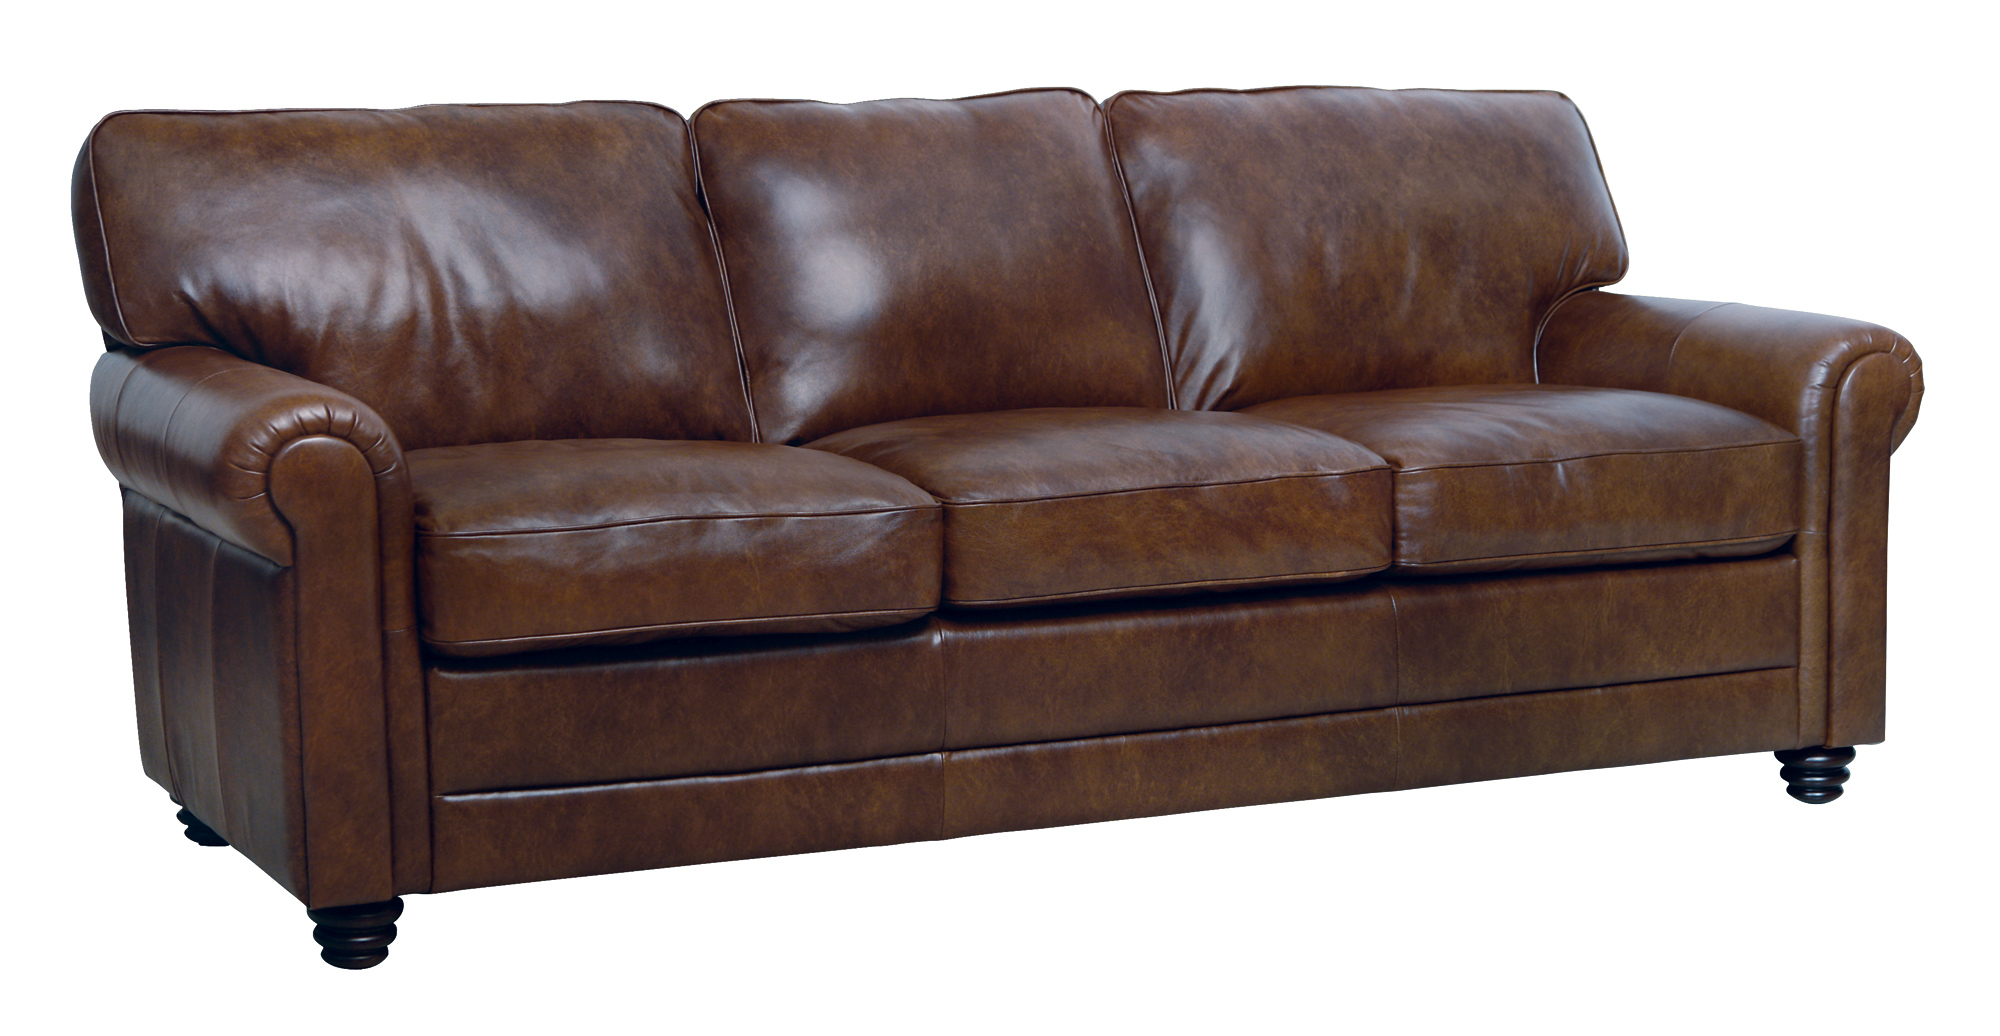 Leather Sofa Chair New Luke Leather Italian Brown Down Filled Quotandrew Quot Sofa